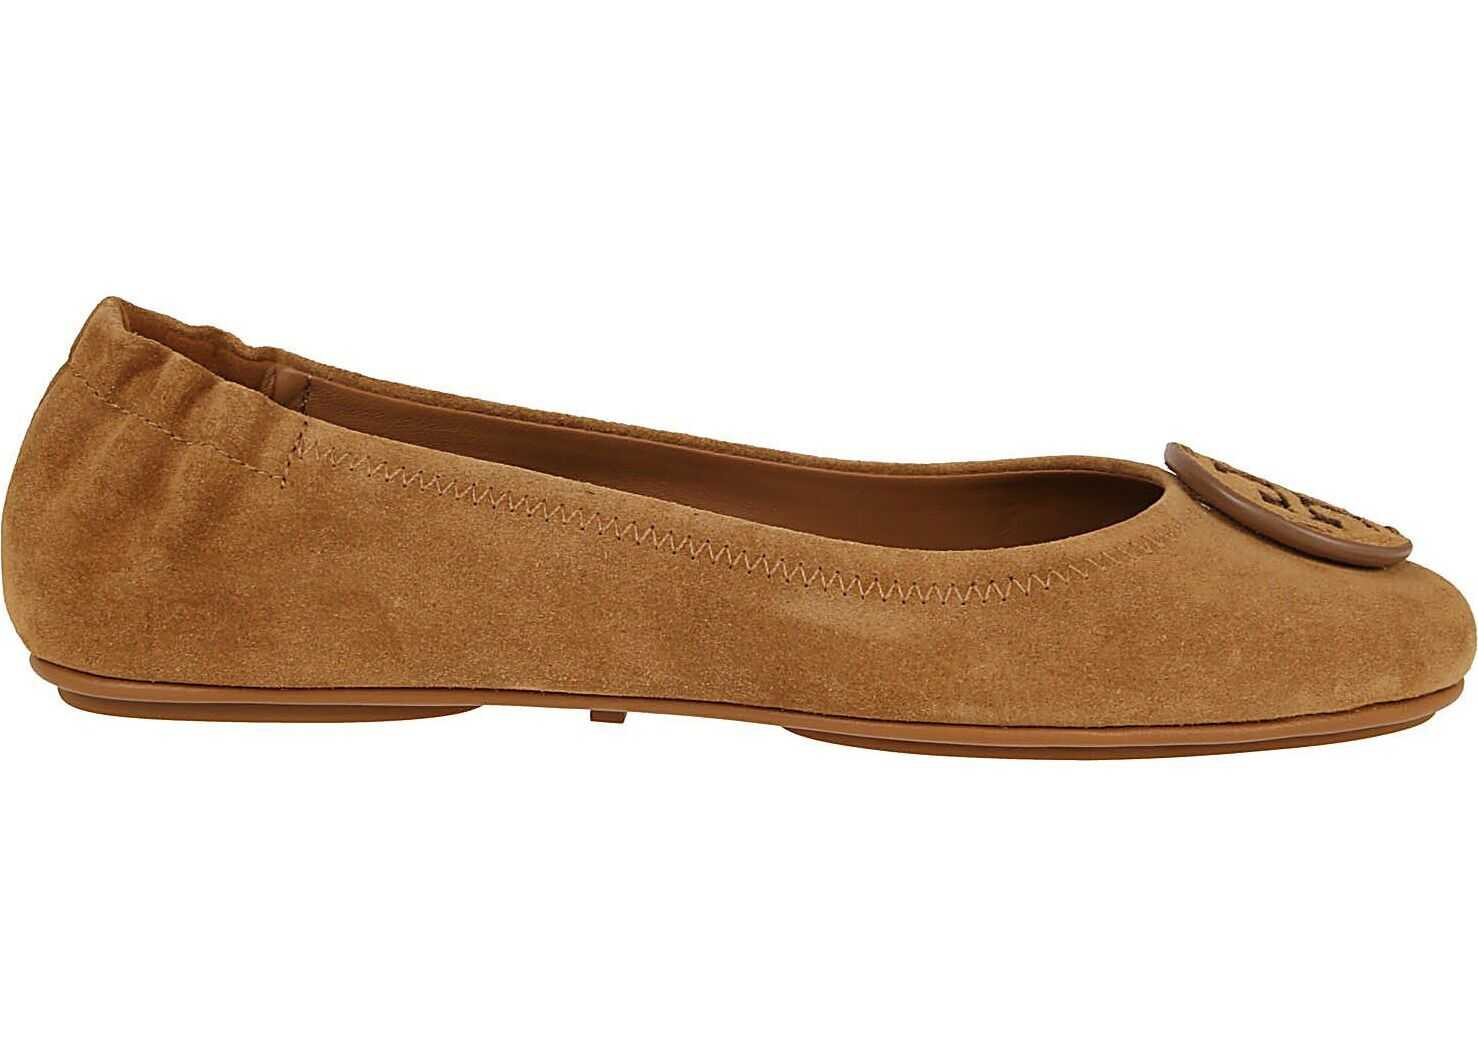 Tory Burch Suede Flats BROWN